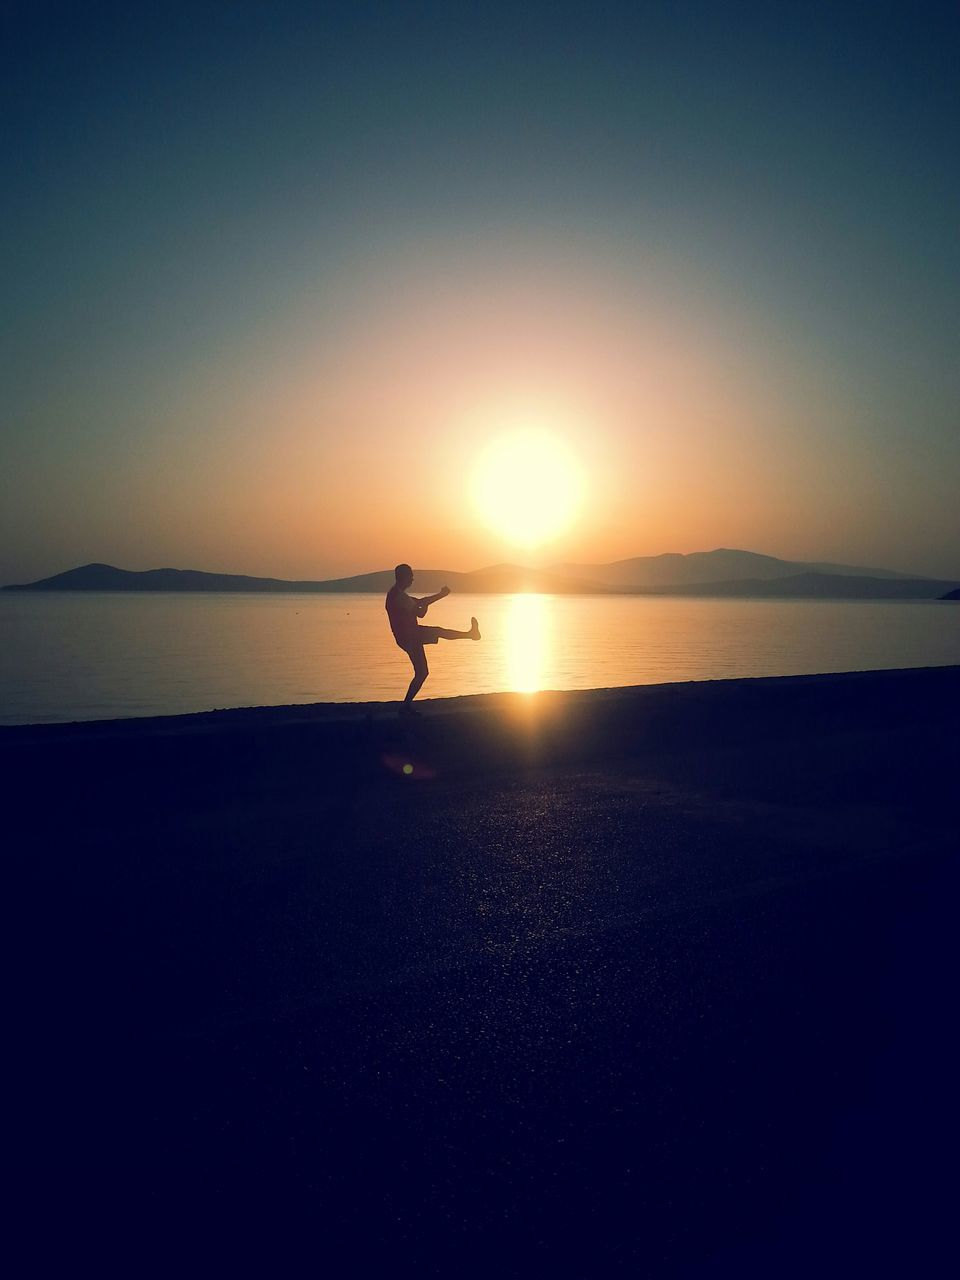 sunset, silhouette, sea, water, scenics, nature, real people, full length, one person, beauty in nature, outdoors, sun, leisure activity, horizon over water, tranquil scene, tranquility, lifestyles, skill, beach, sport, sky, clear sky, men, day, people